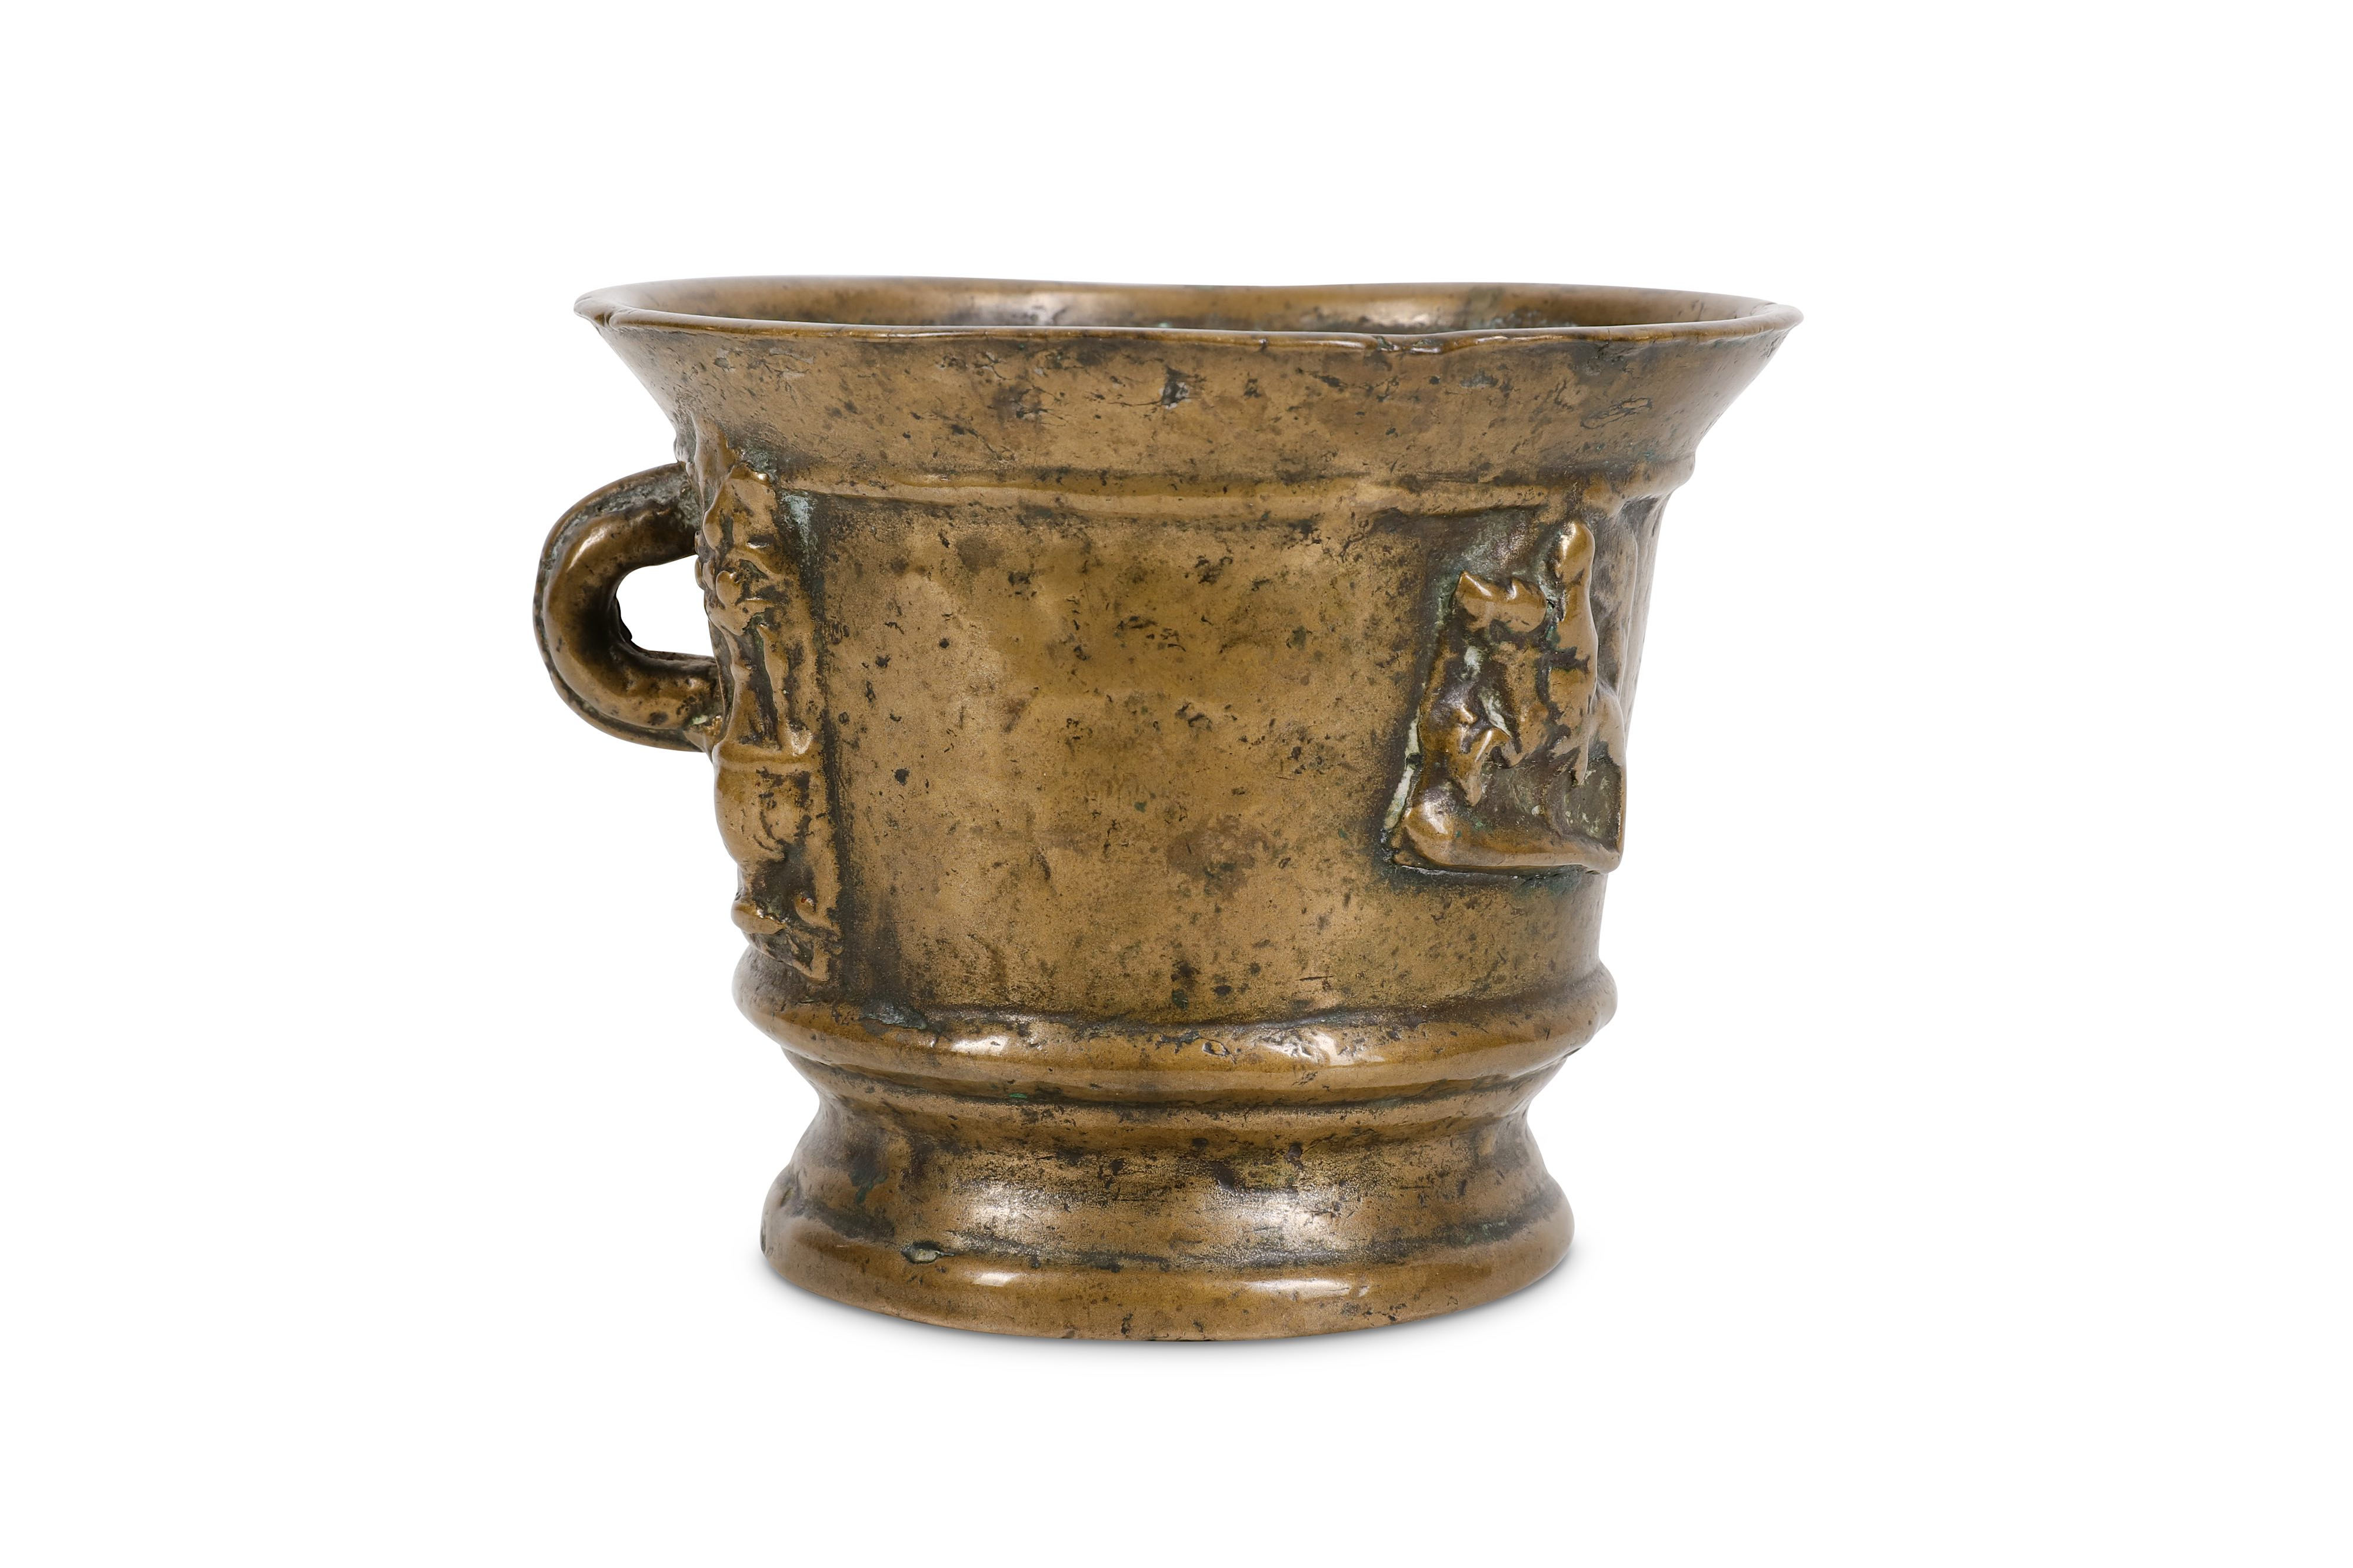 Lot 23 - AN EARLY BRONZE MORTAR, LATER ENGRAVED 'MAIRI R.Y.S'